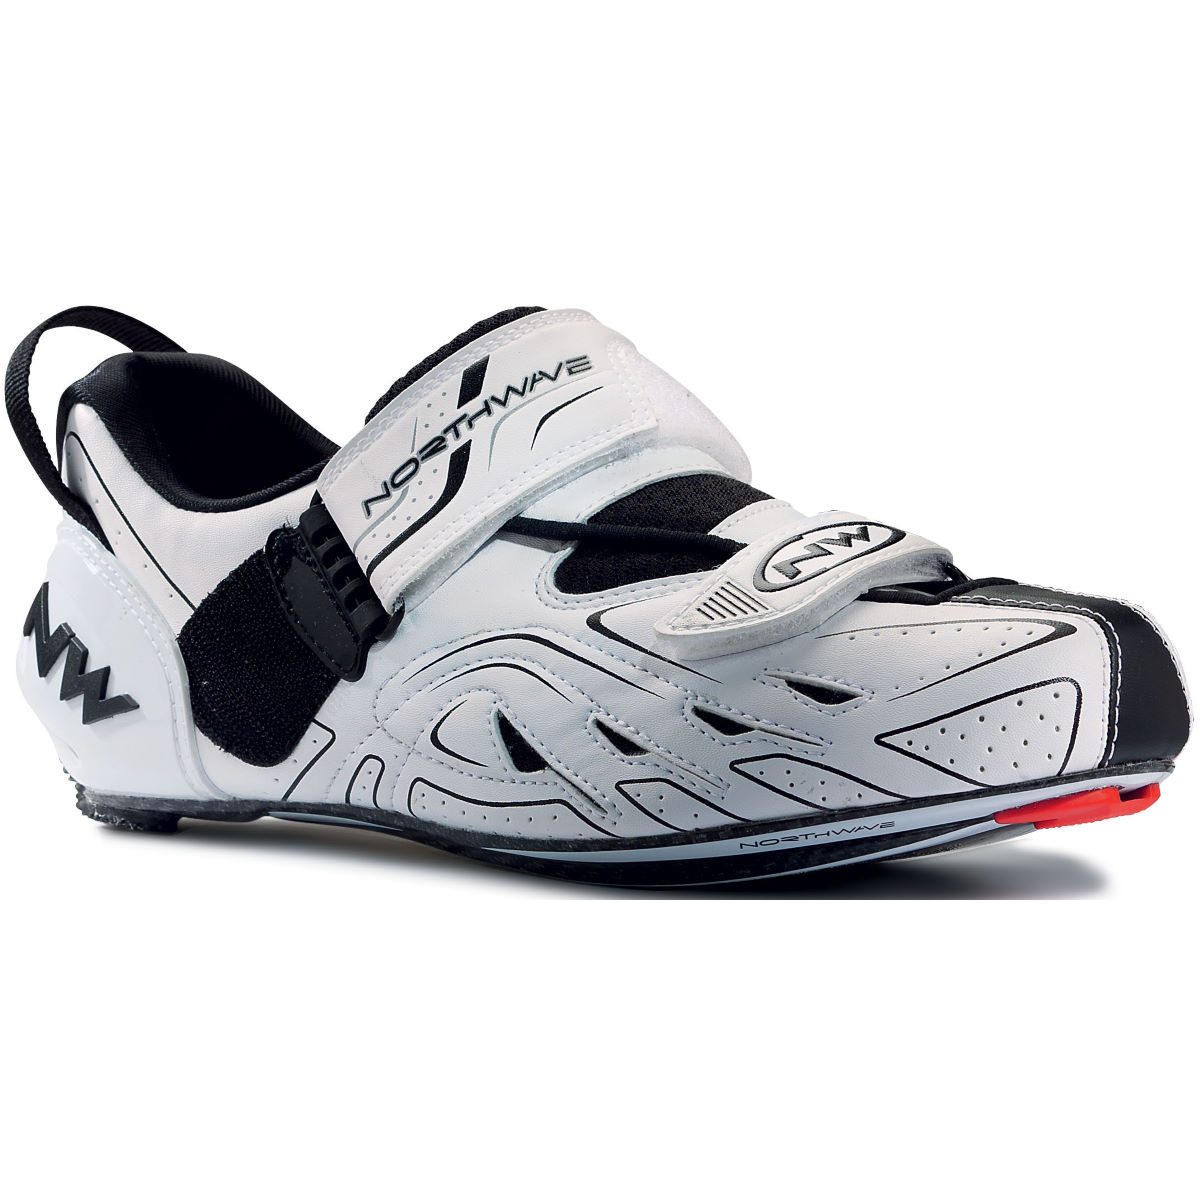 Northwave Northwave Tribute Triathlon Shoes   Cycling Shoes